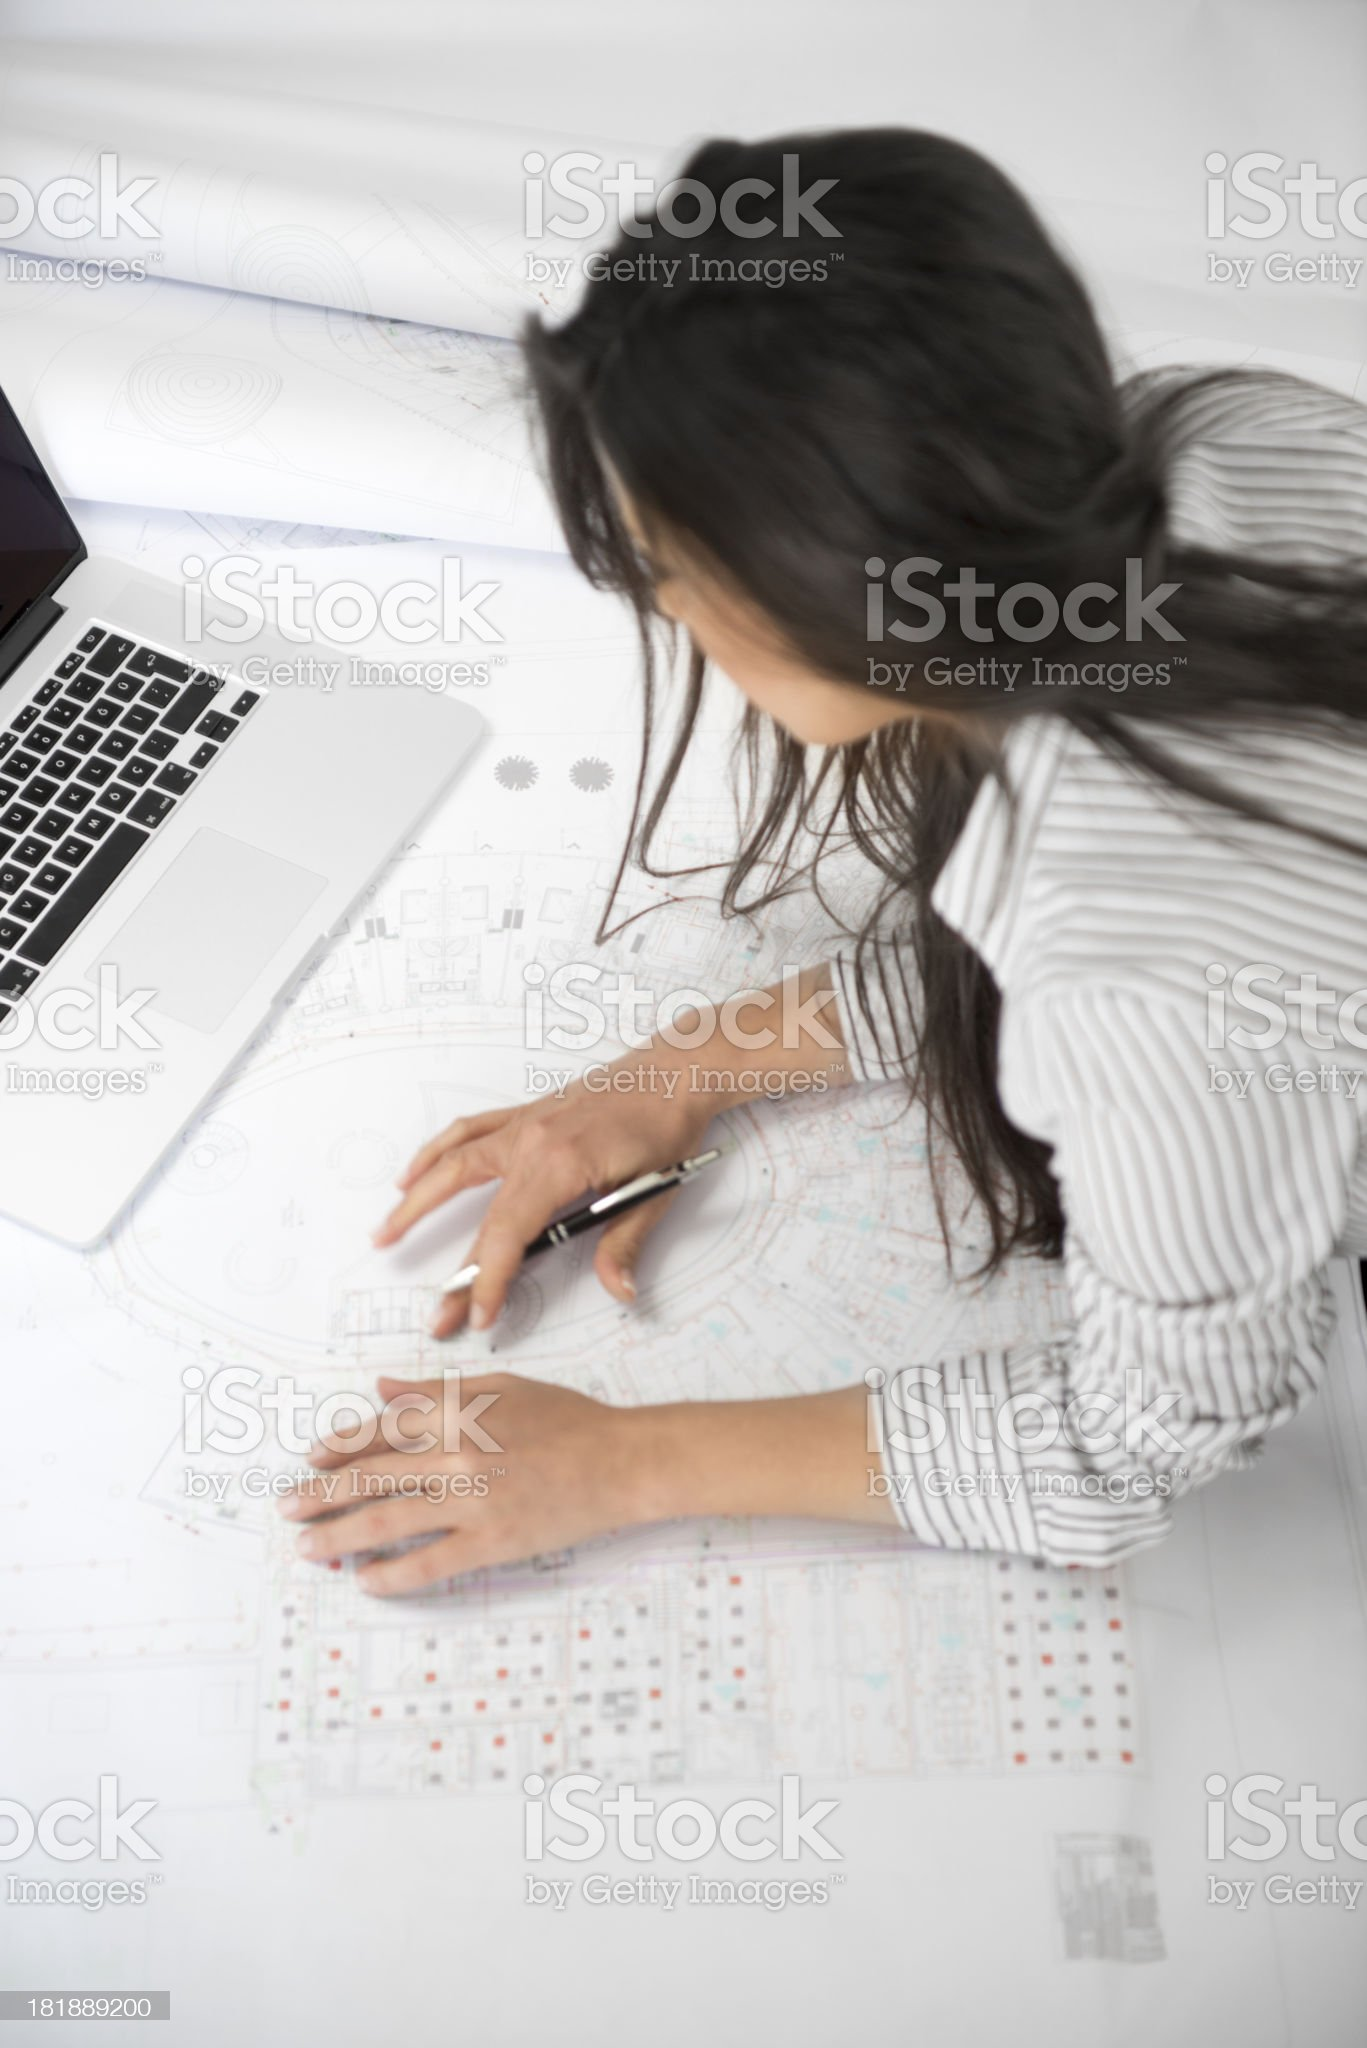 project drawing royalty-free stock photo